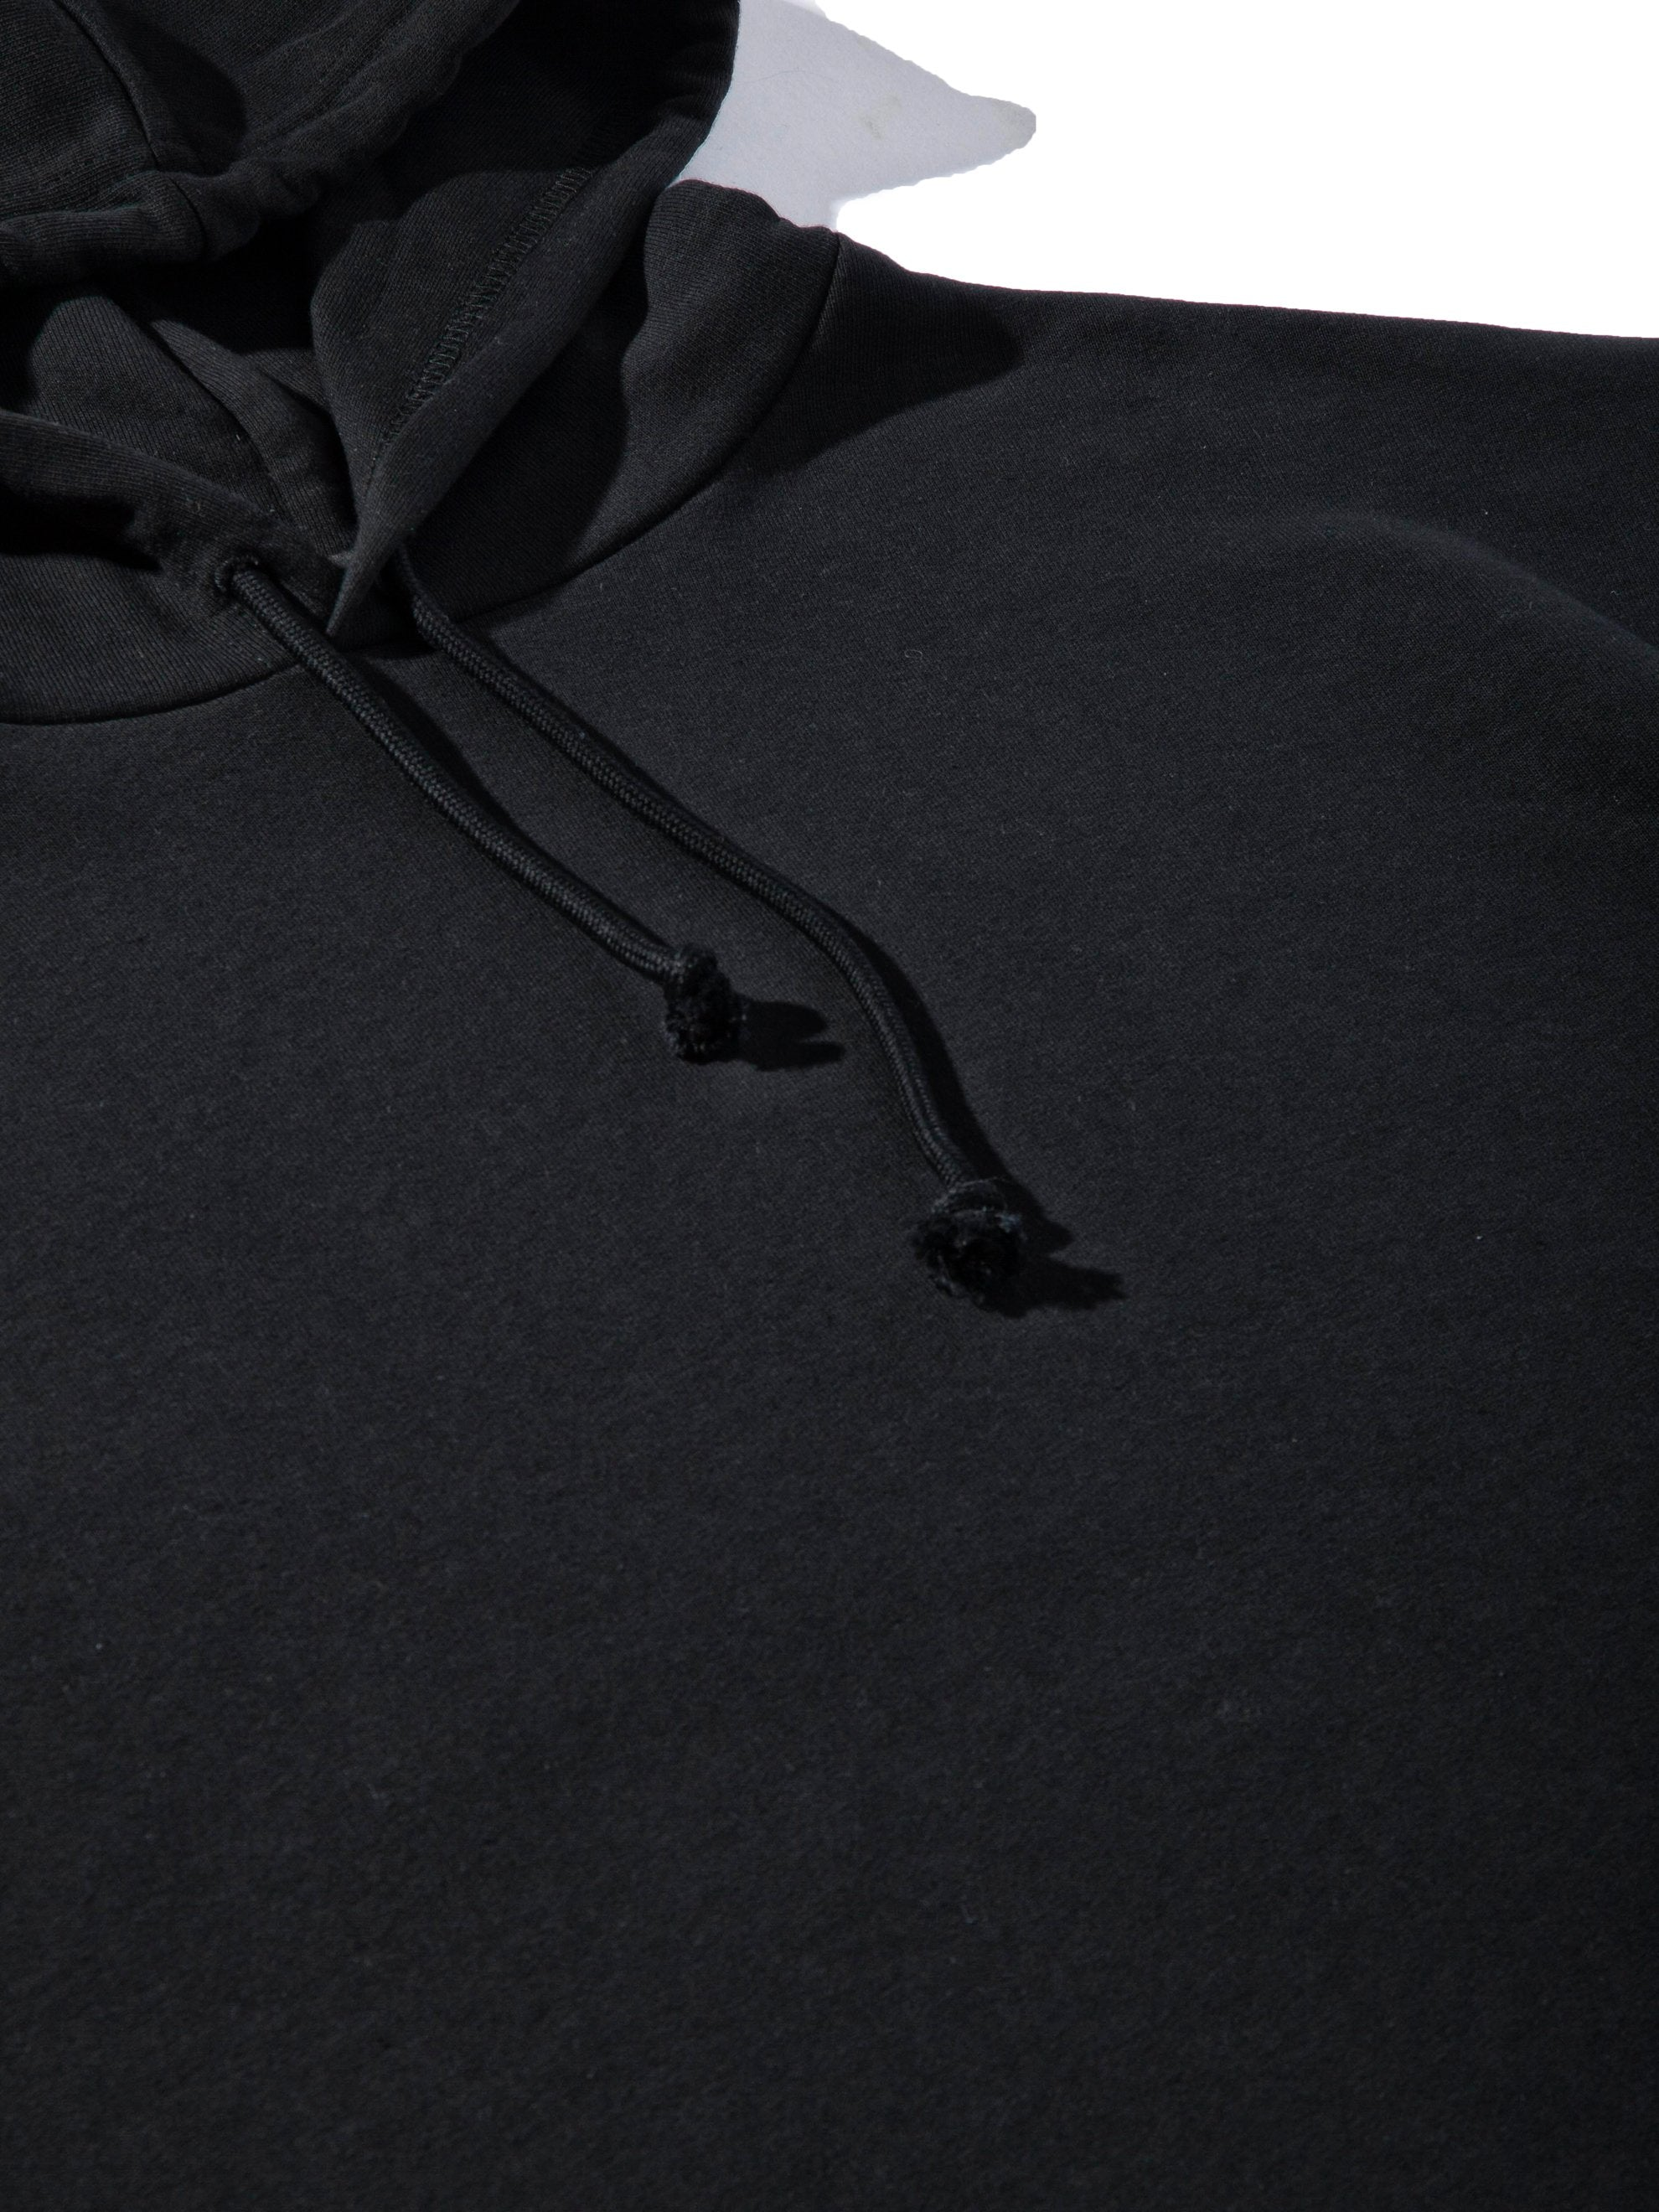 Black Any Way Out Hooded Sweatshirt 9